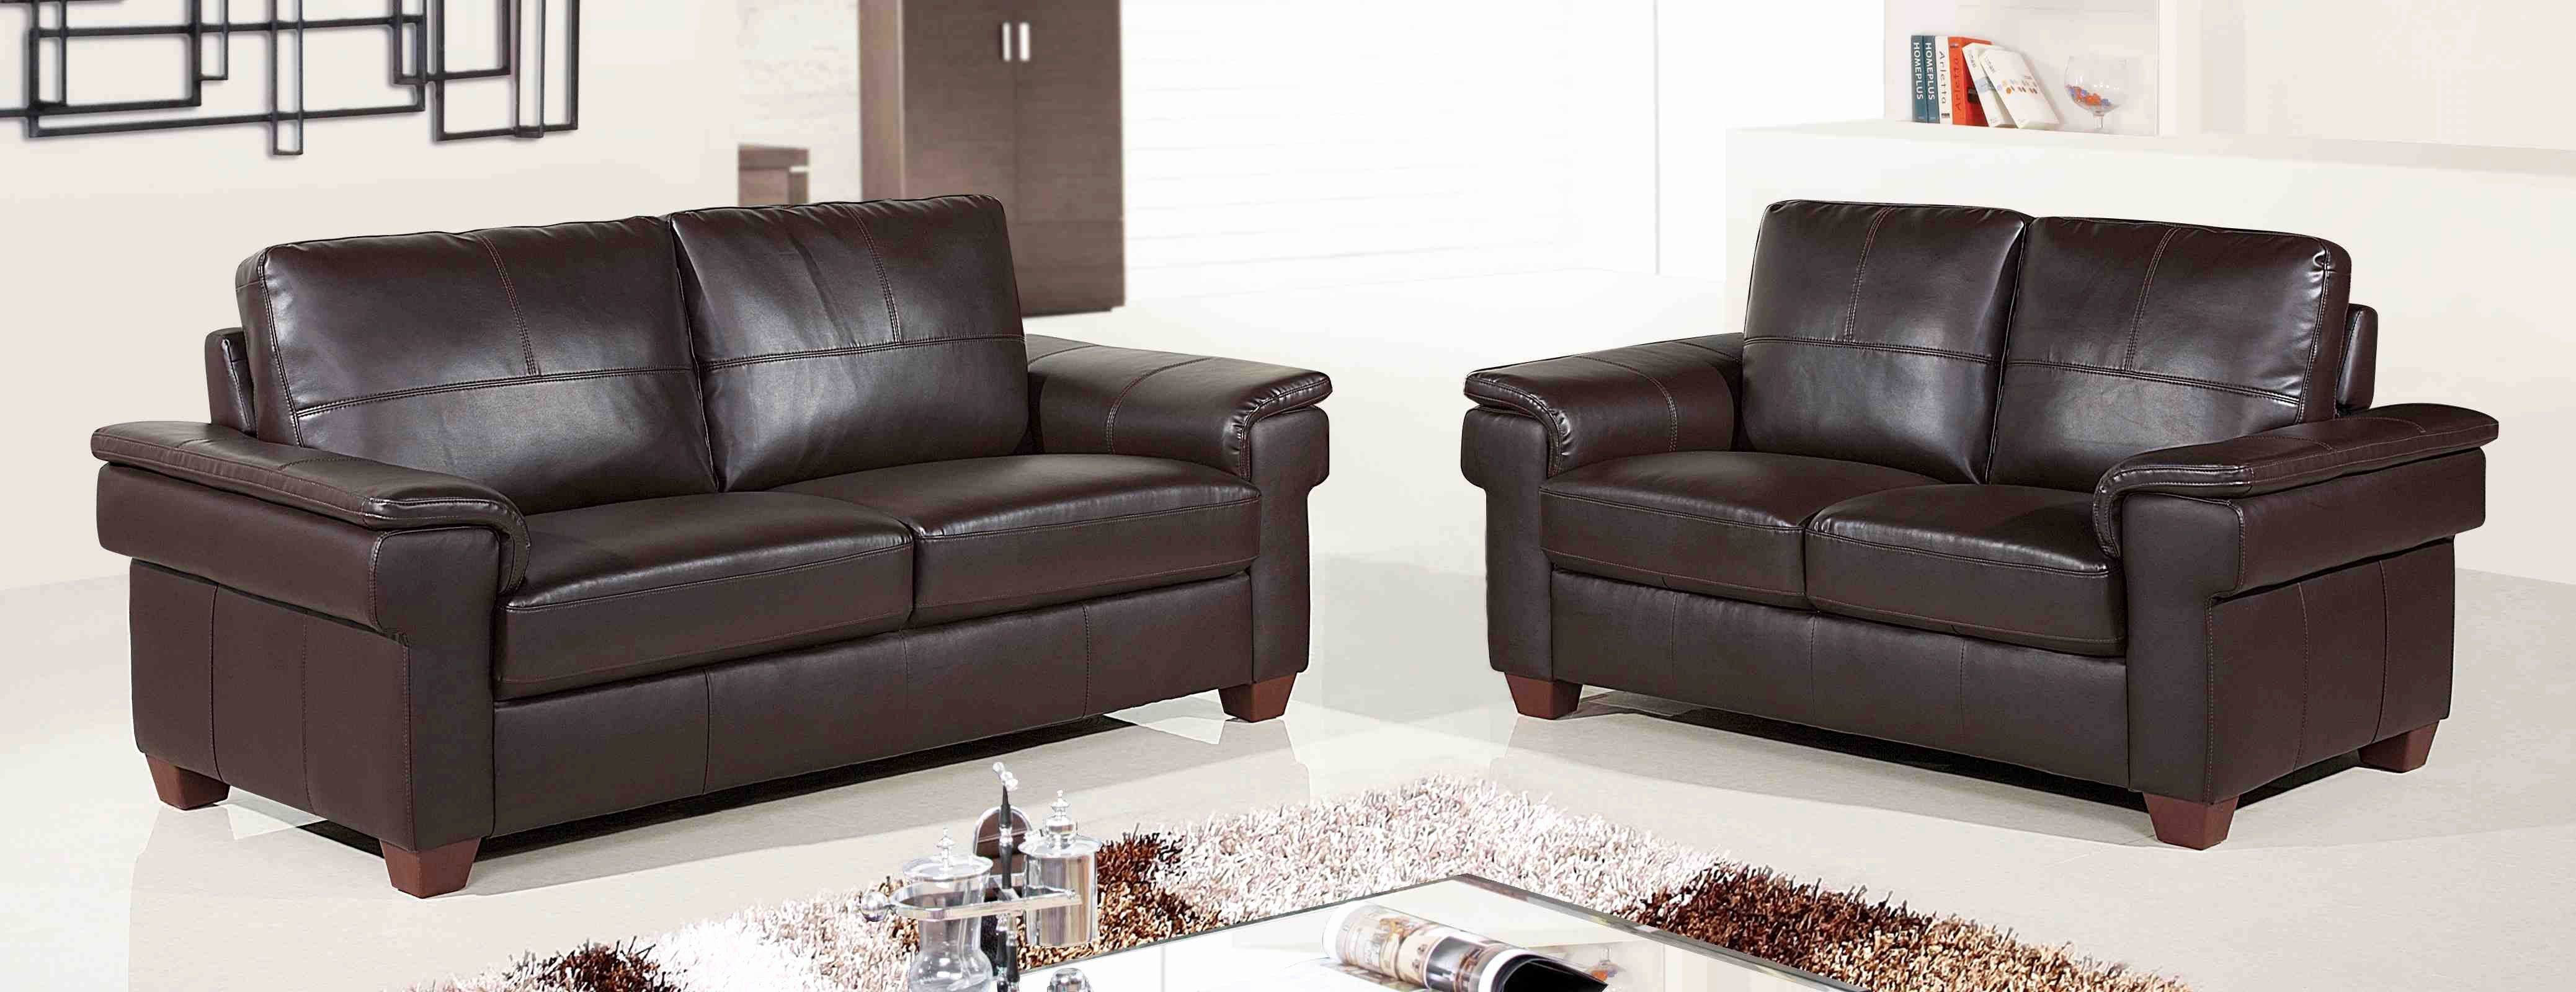 Unique 3 Piece White Leather Sofa Set Pics 3 Piece White Leather Sofa Set Best Of Brown Leather Sofa Best Leather Sofa White Leather Sofa Set Leather Sofa Set